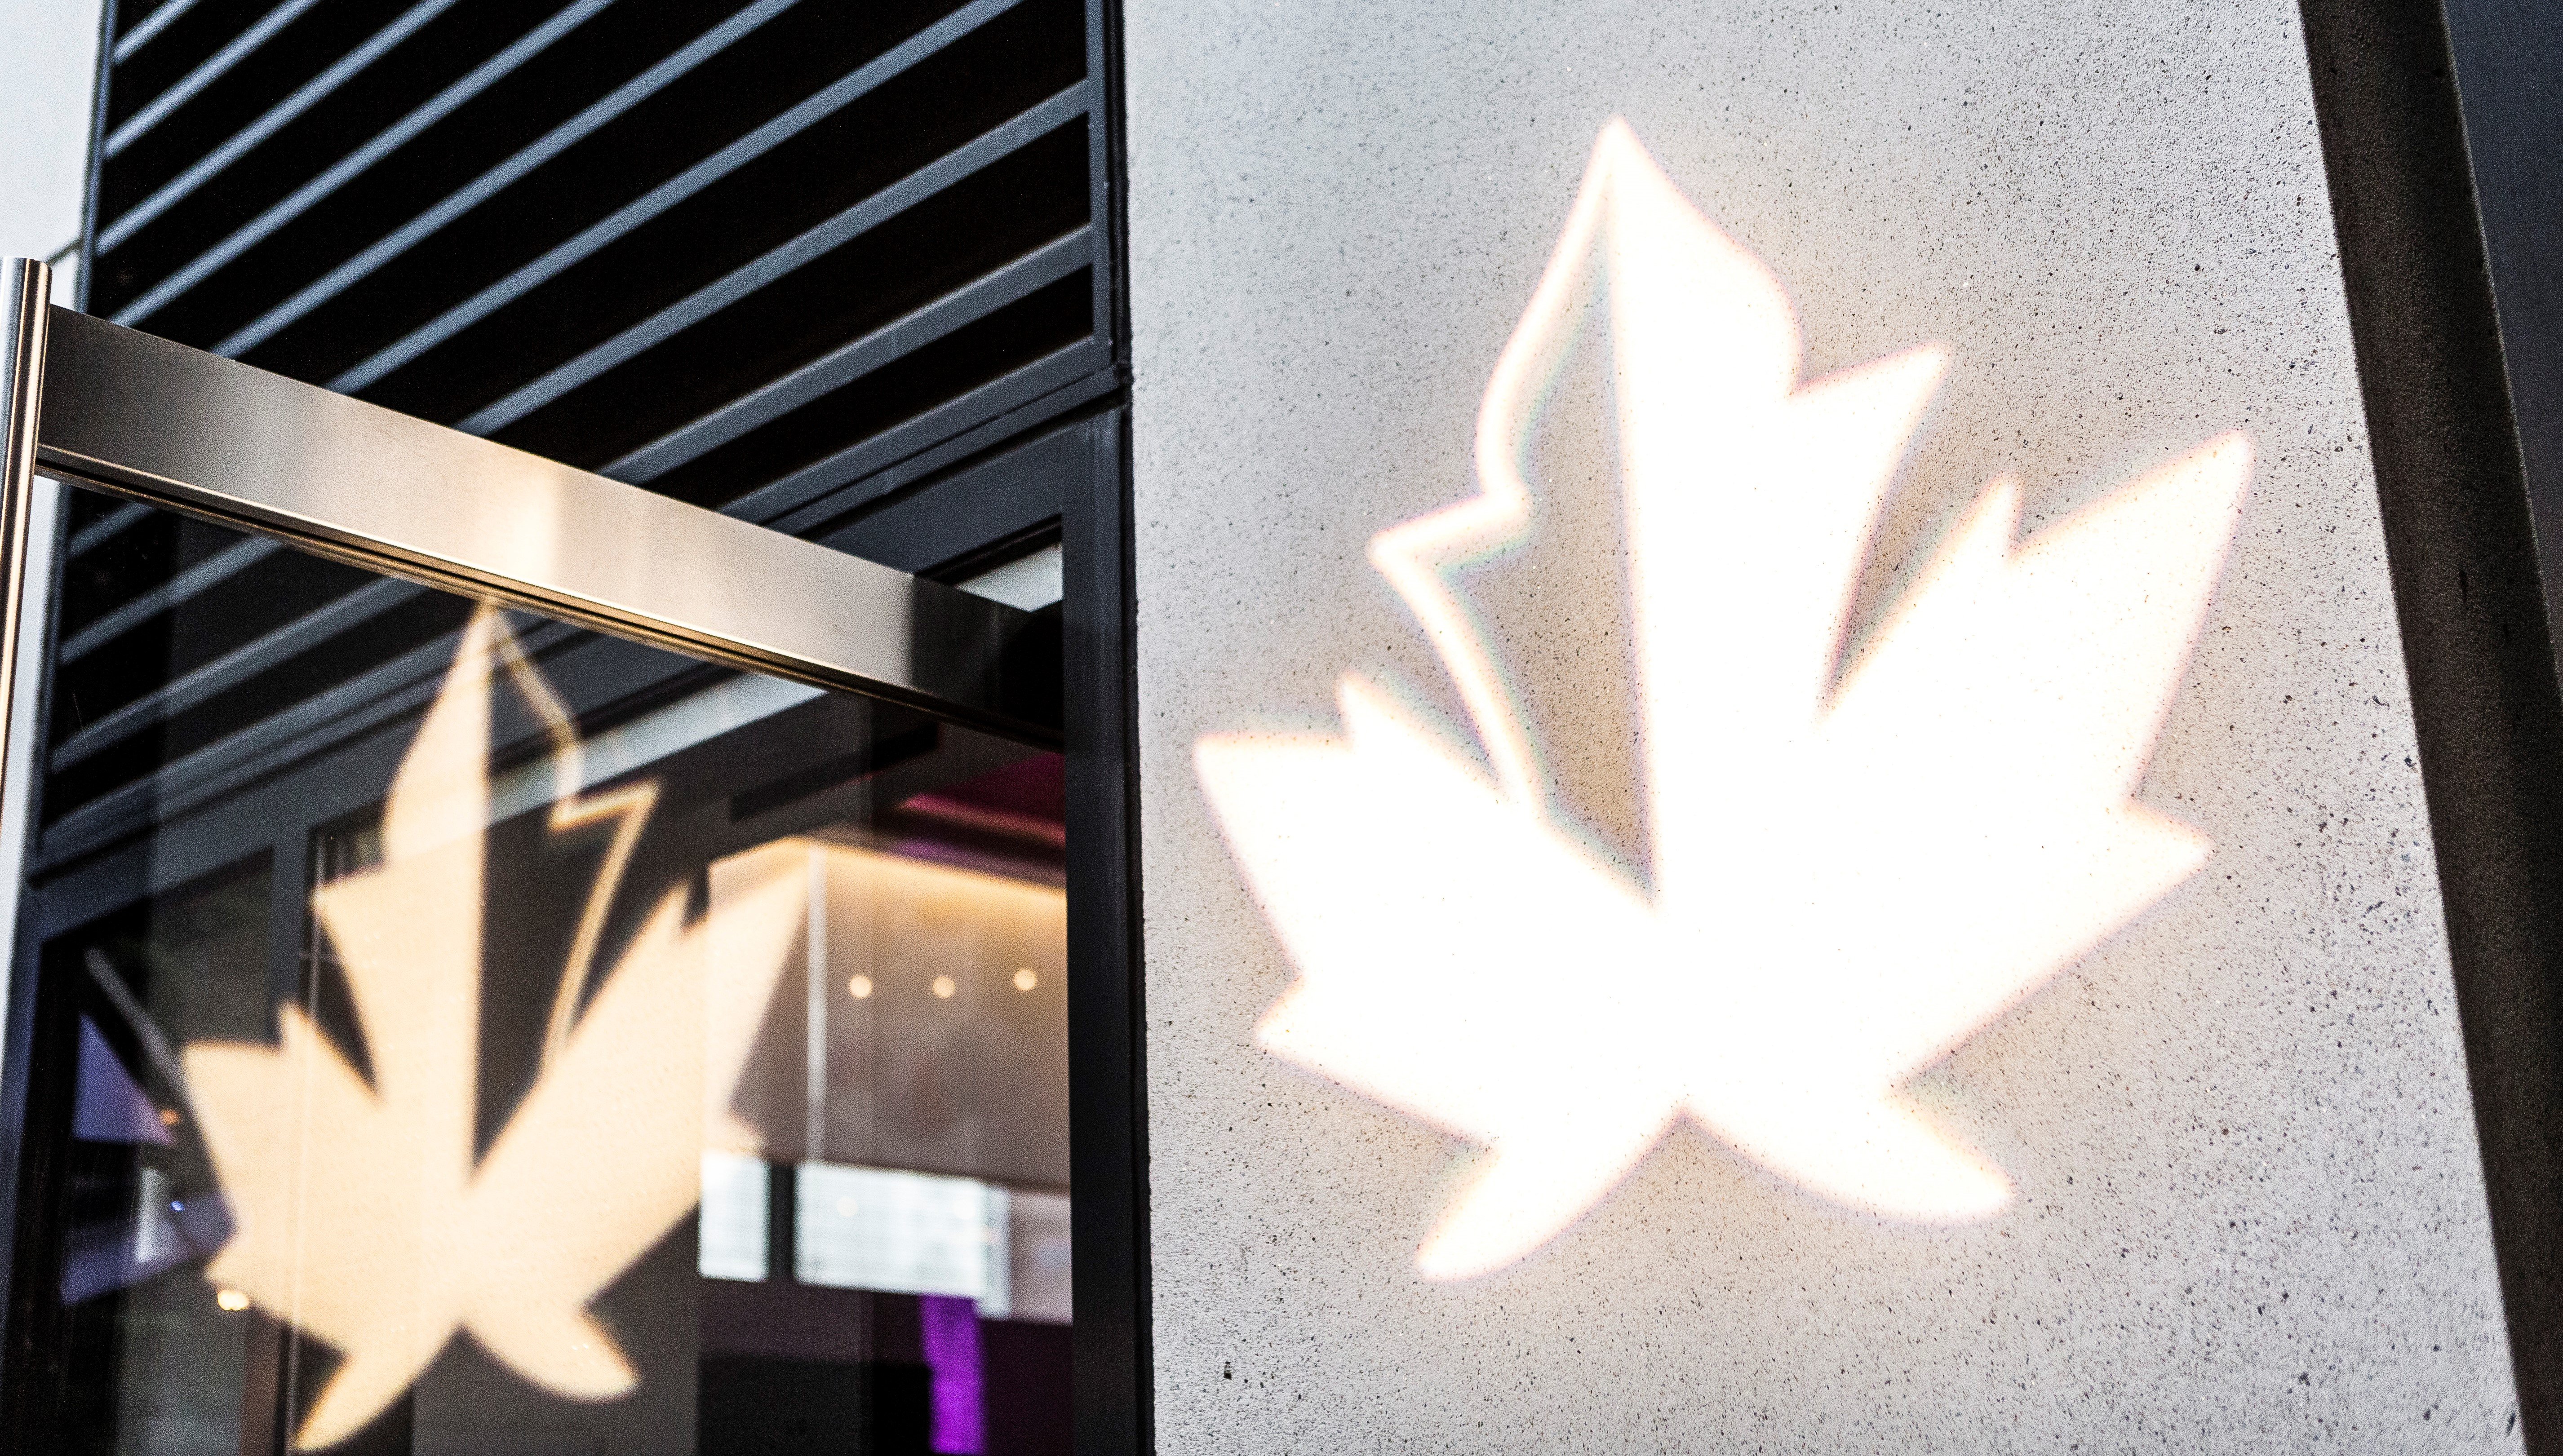 Image with the shadows of maple leafs